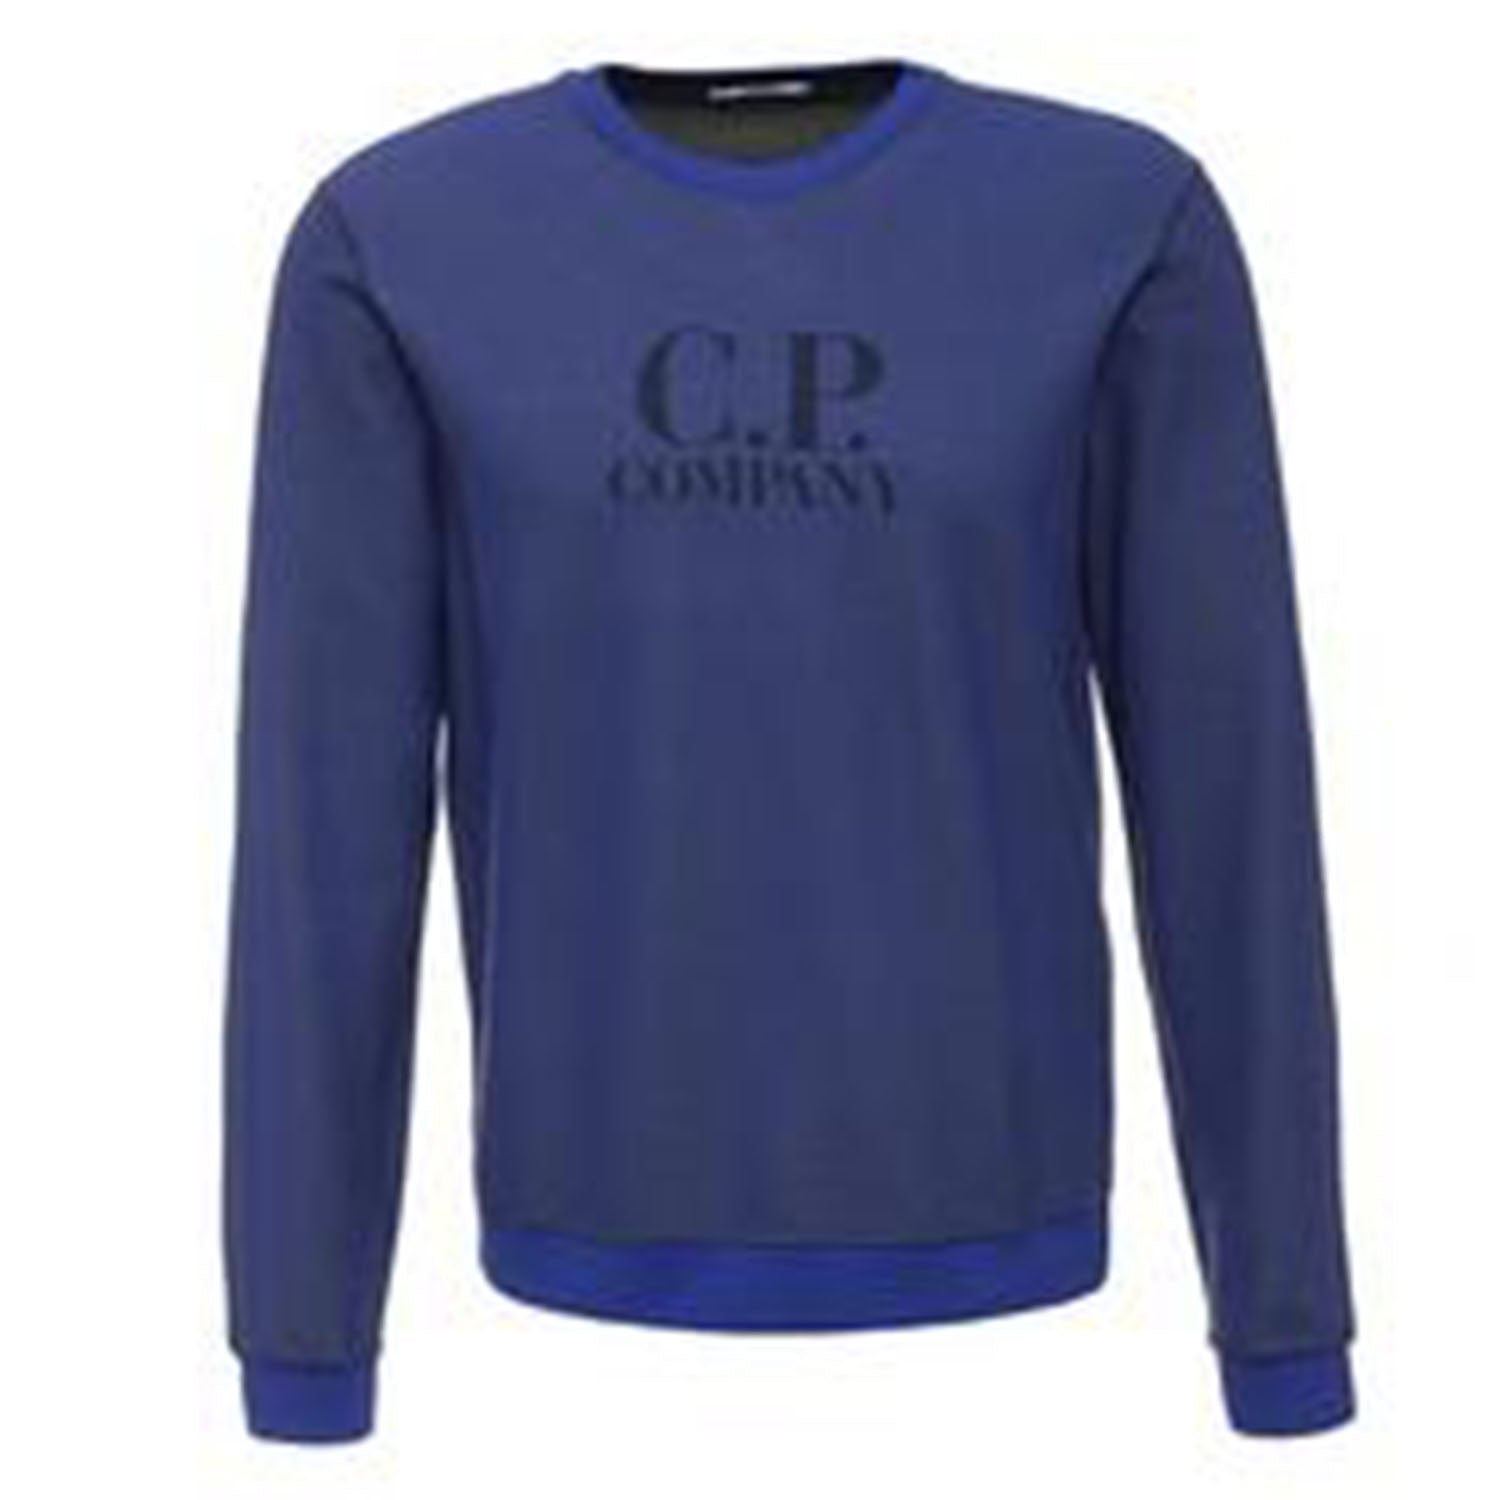 CP Company Reversible Sweater